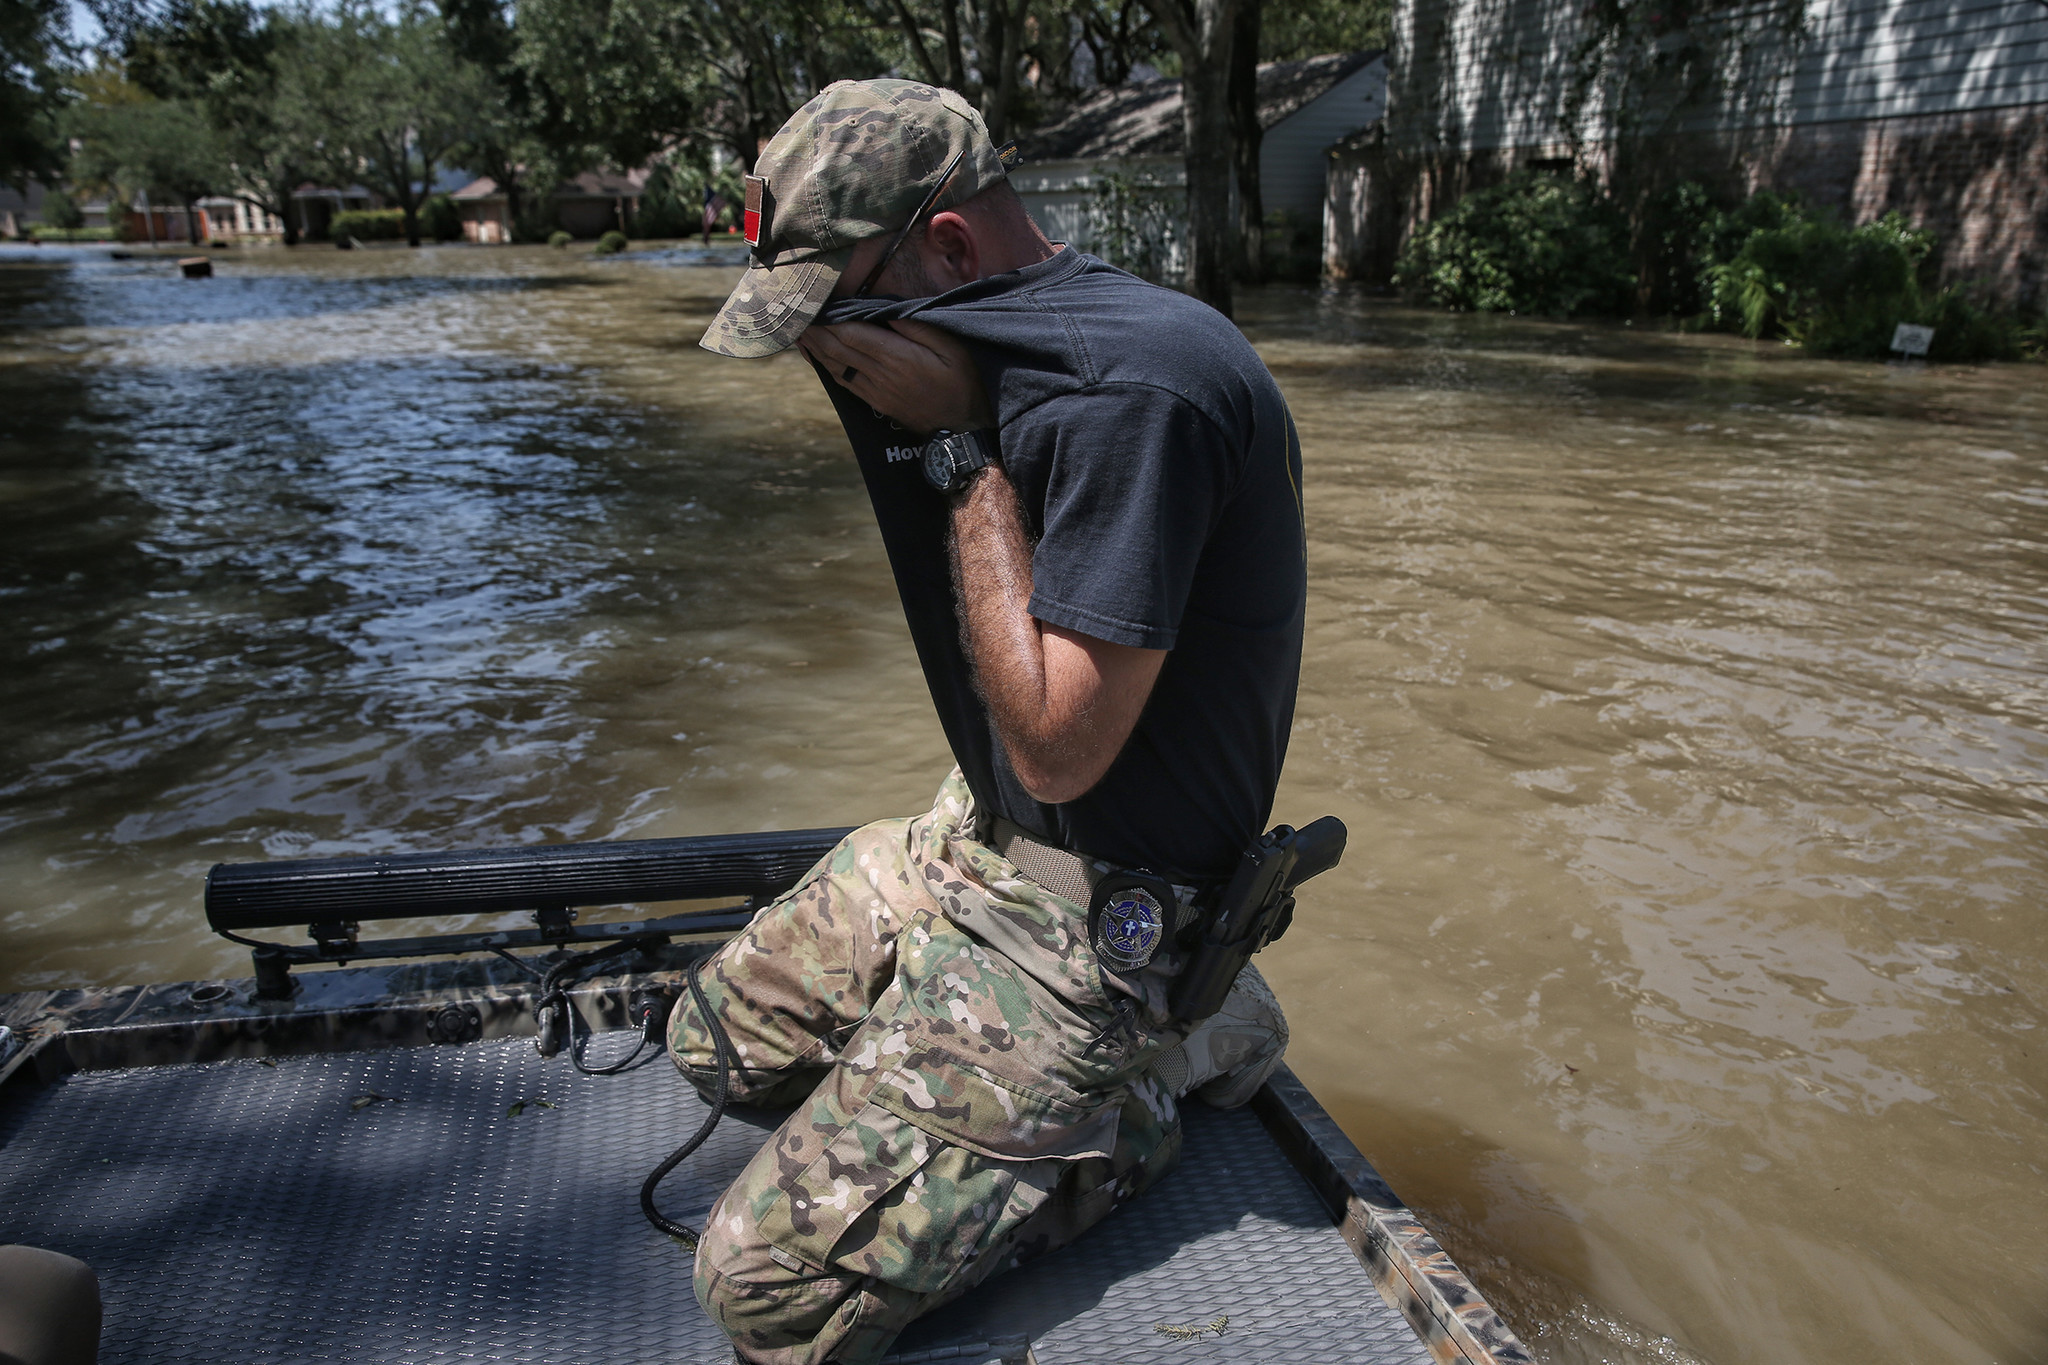 Wes Higgins wipes sweat from his face as he finishes the last of five days of patrolling flooded neighborhoods in his own boat.